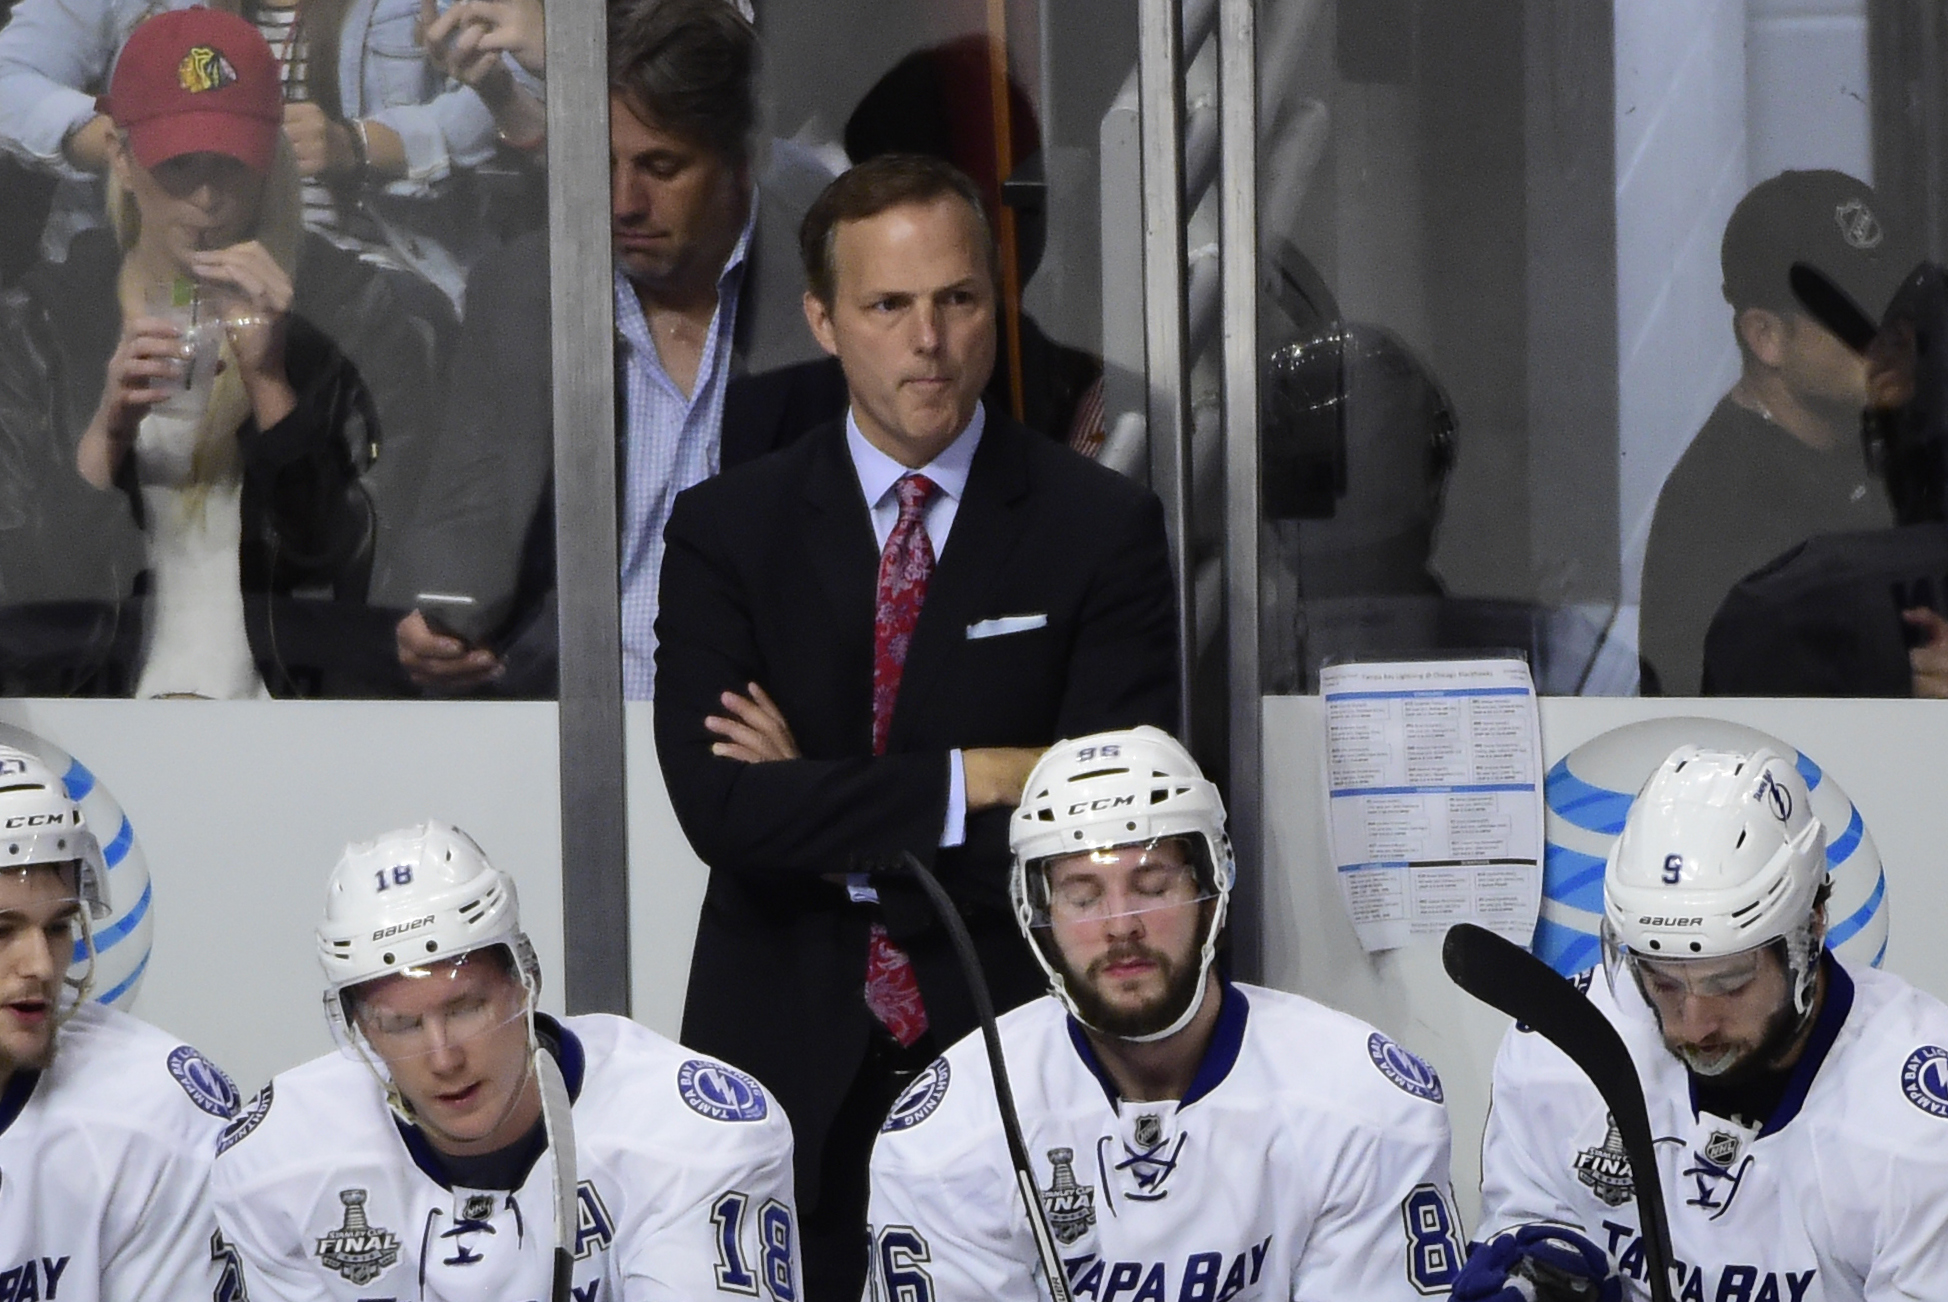 Nominate Jon Cooper as best head coach of a sports team in Tampa Bay.